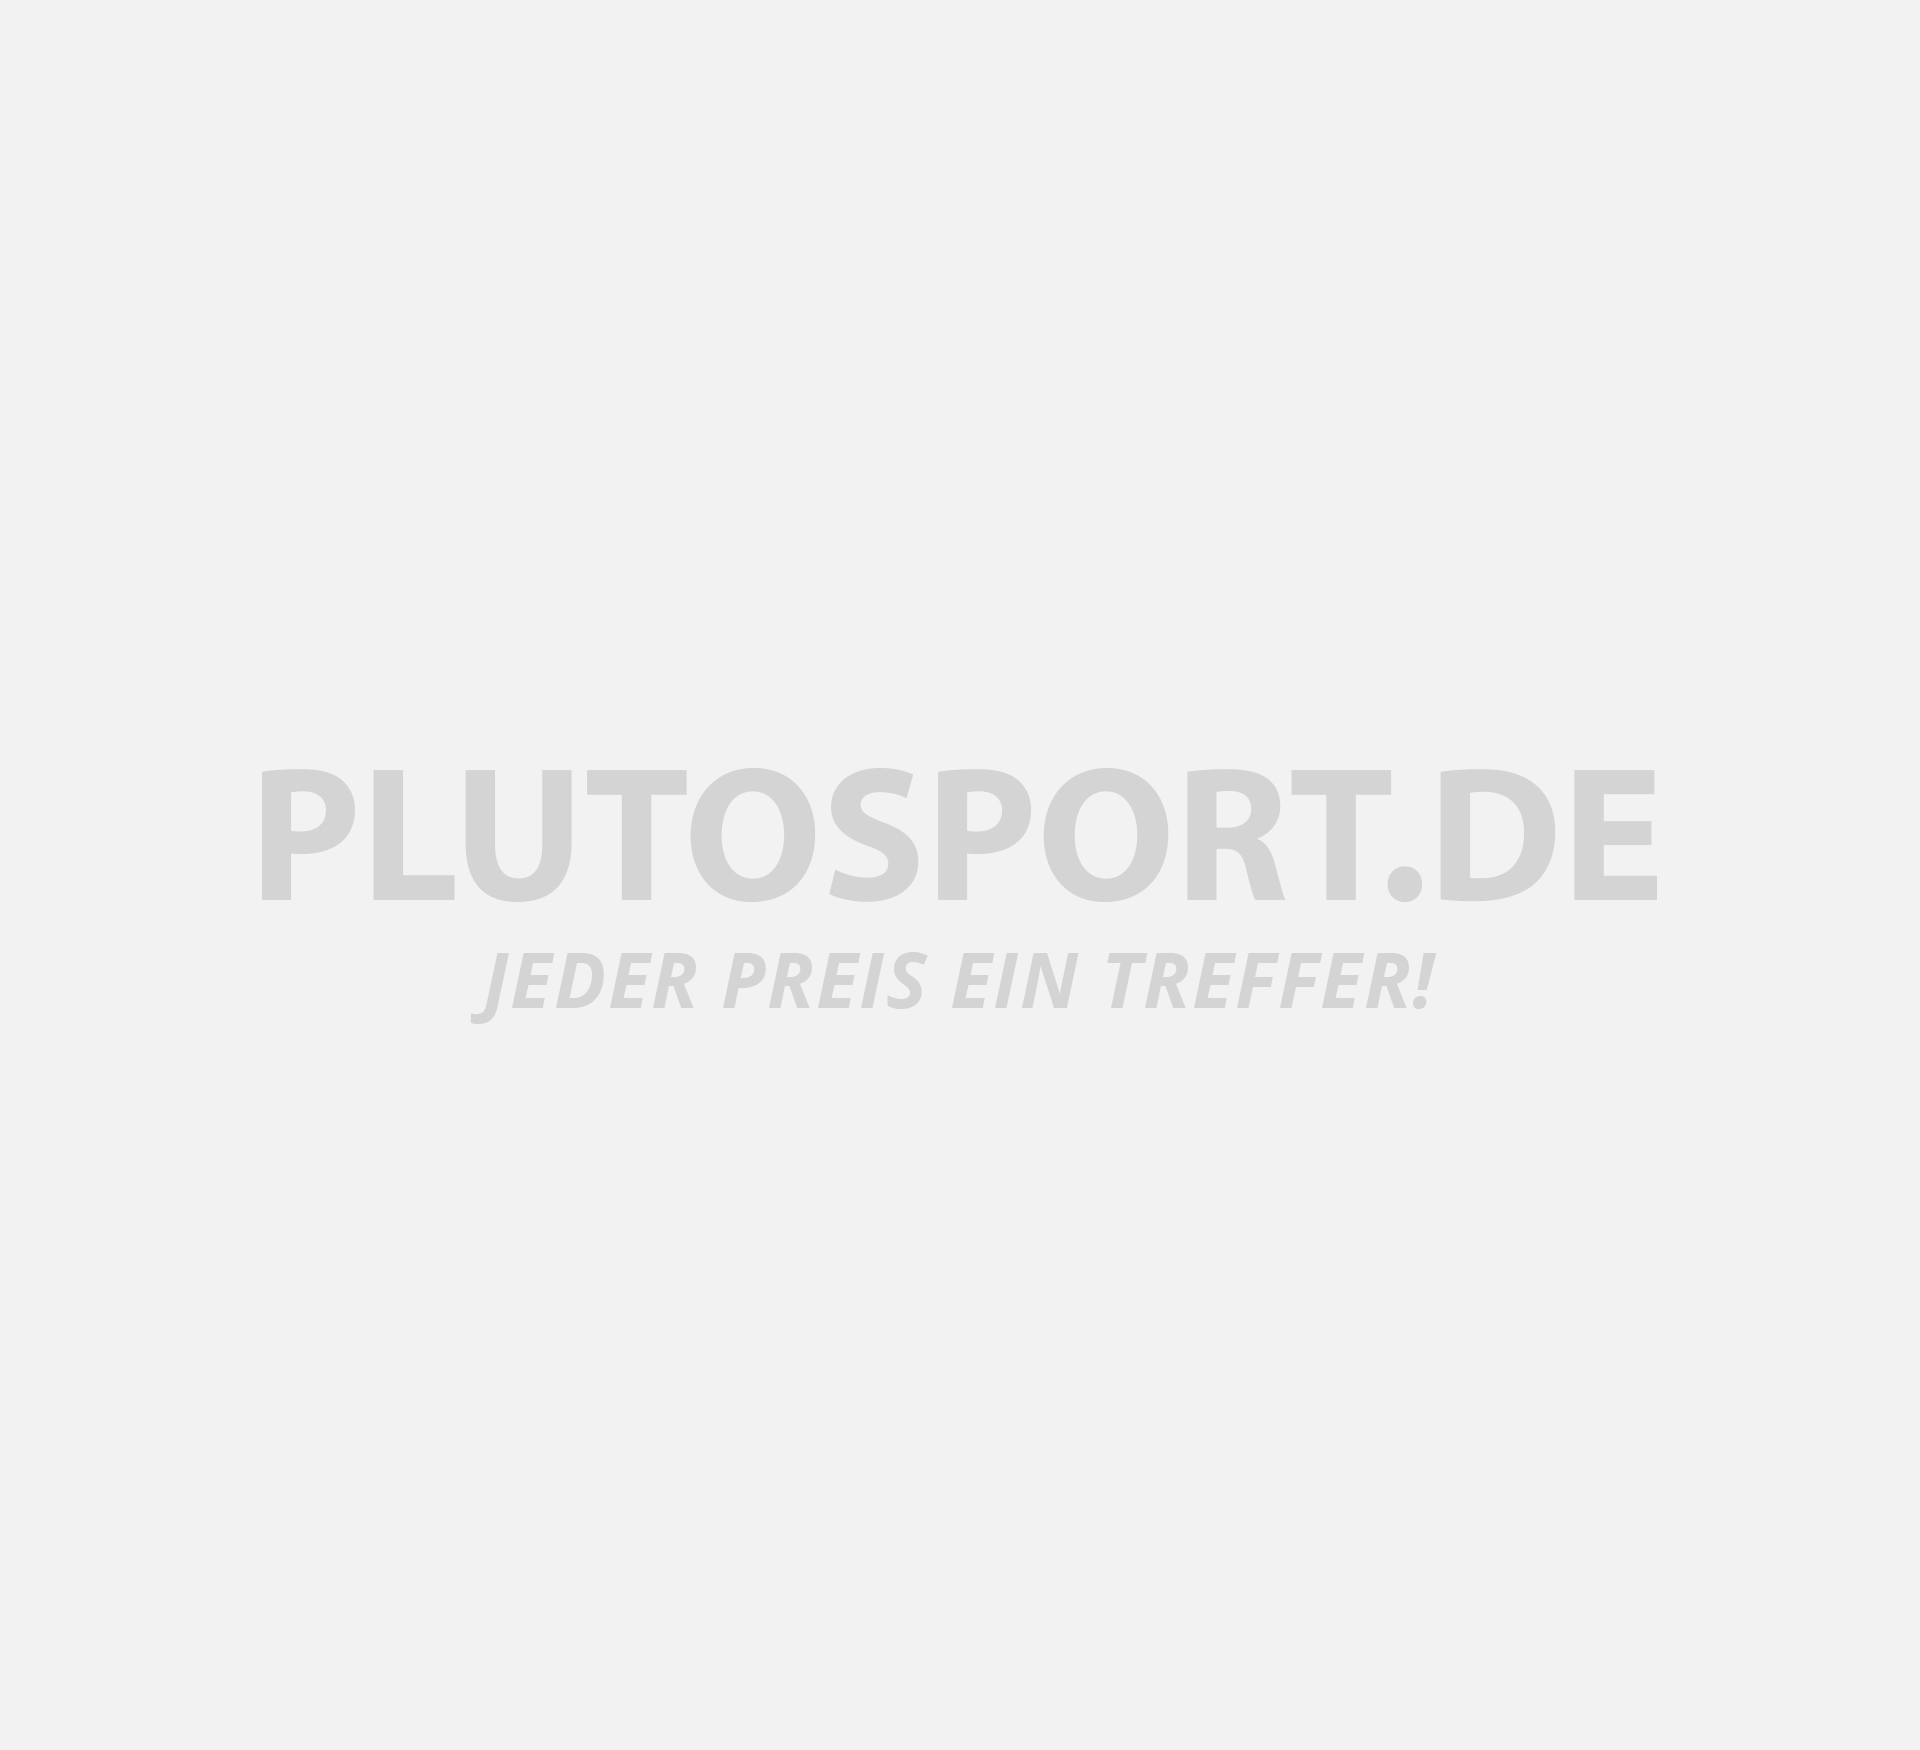 k2 inlineskates rollerblades skates raider preise und. Black Bedroom Furniture Sets. Home Design Ideas